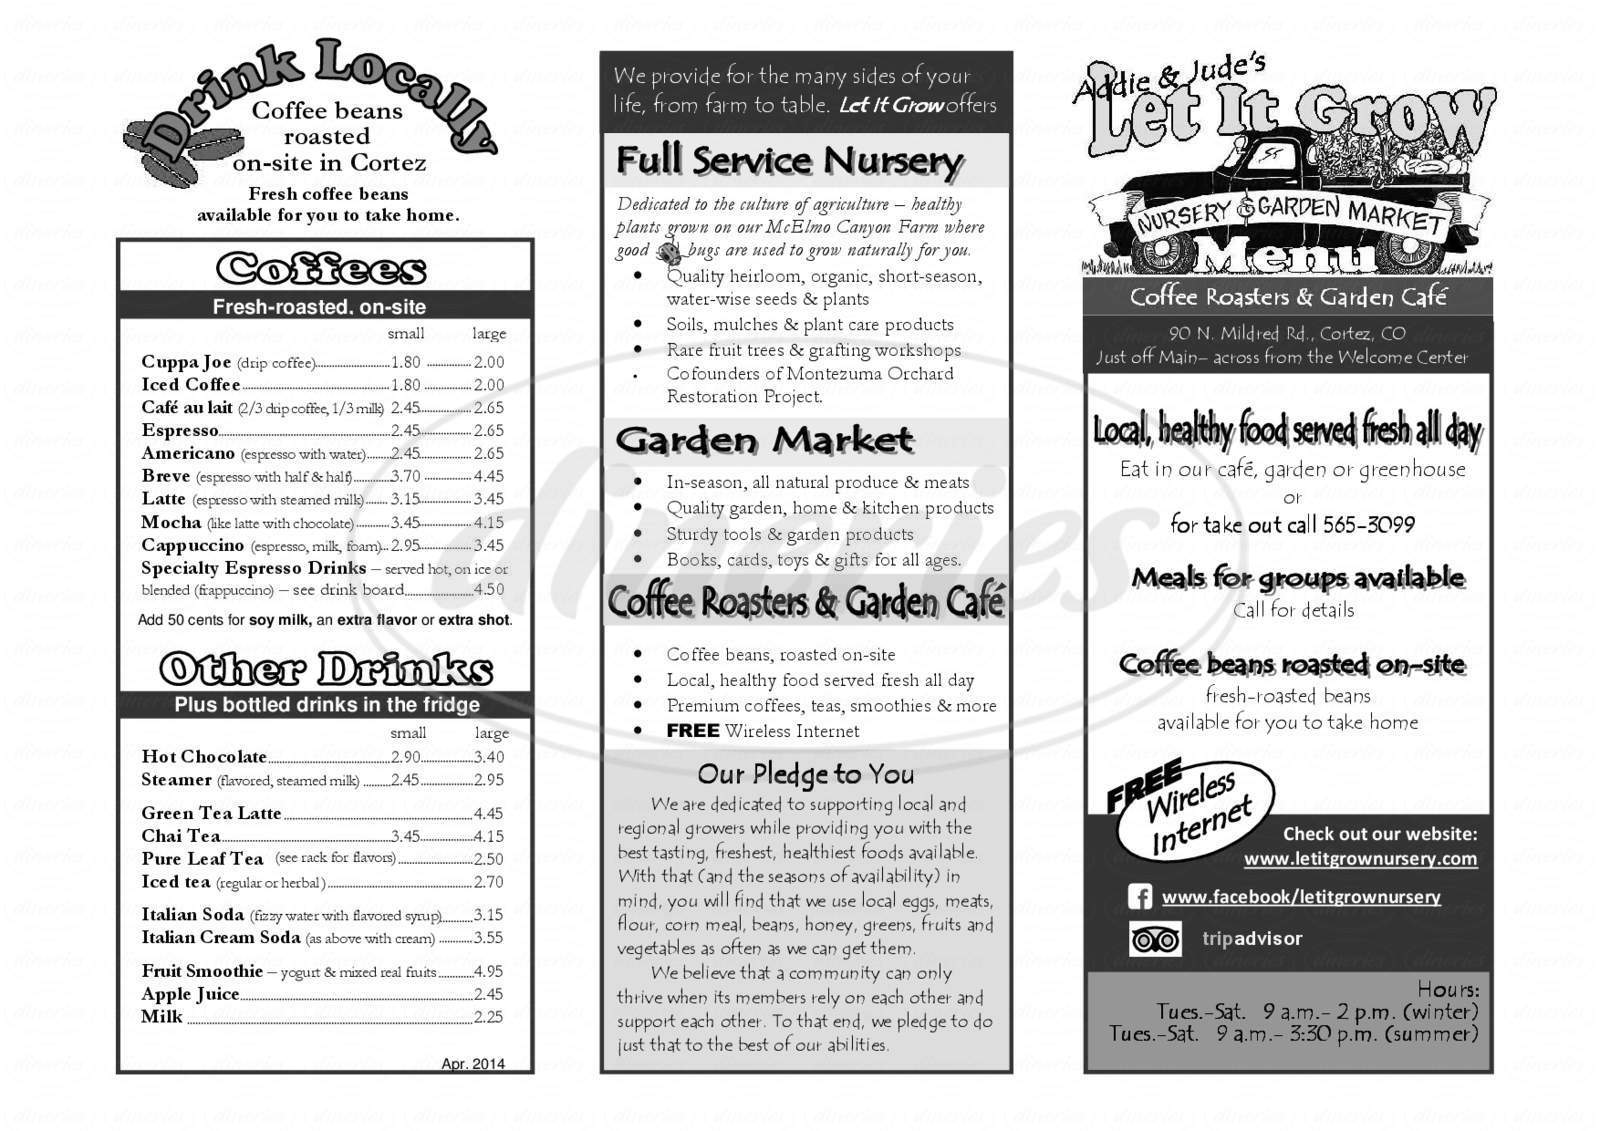 menu for Let It Grow Nursery